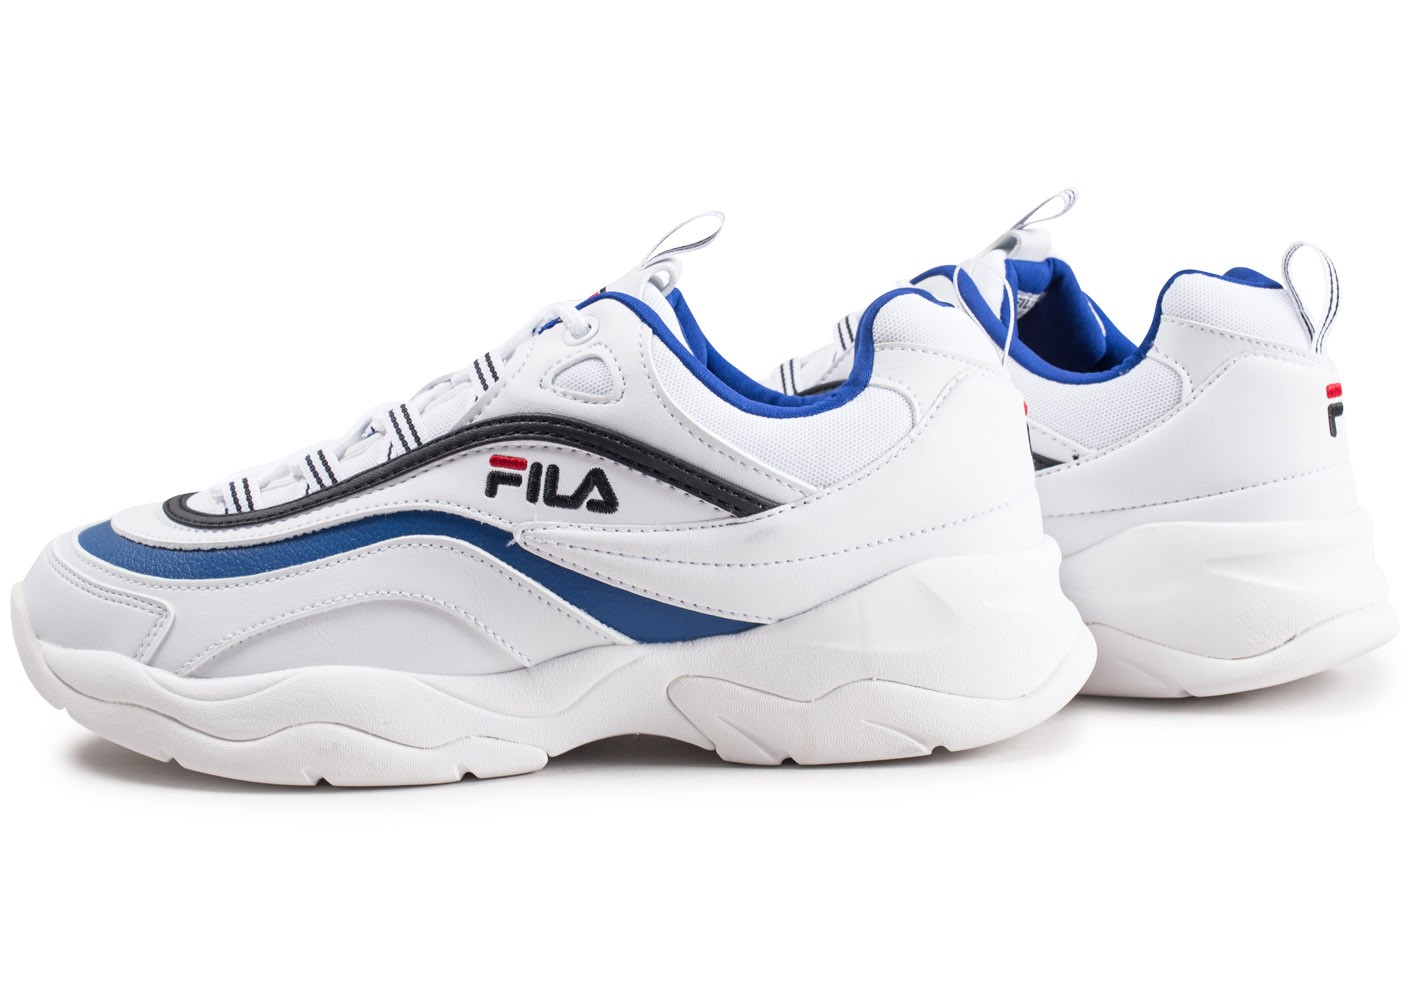 Baskets Homme Chaussures Bleue Blanche Chausport Ray Fila Et x1XYYq